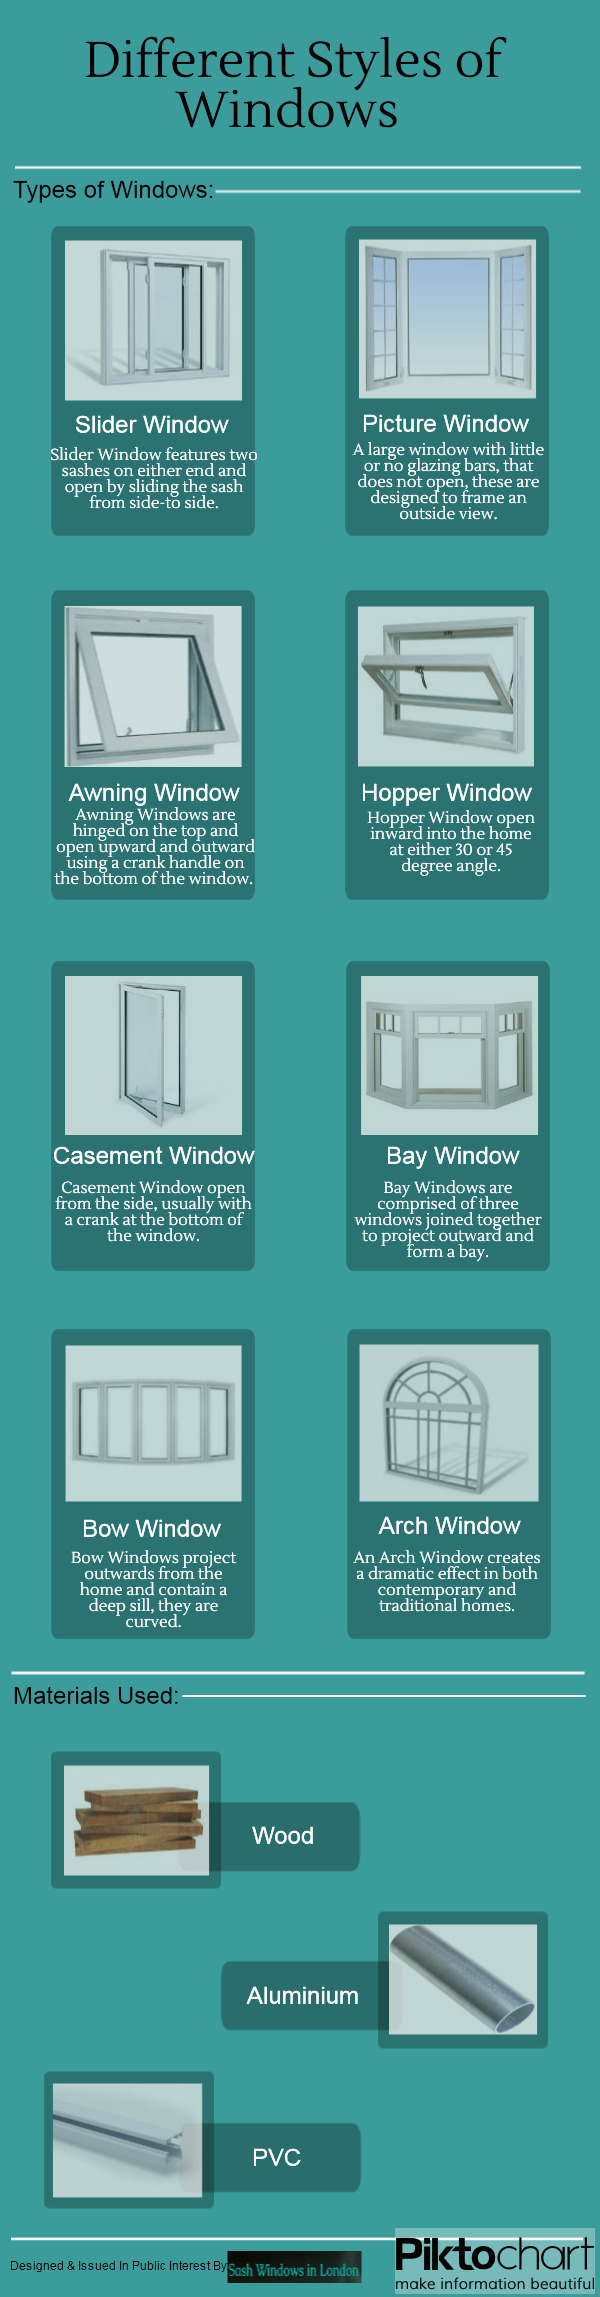 Different Styles Of Windows